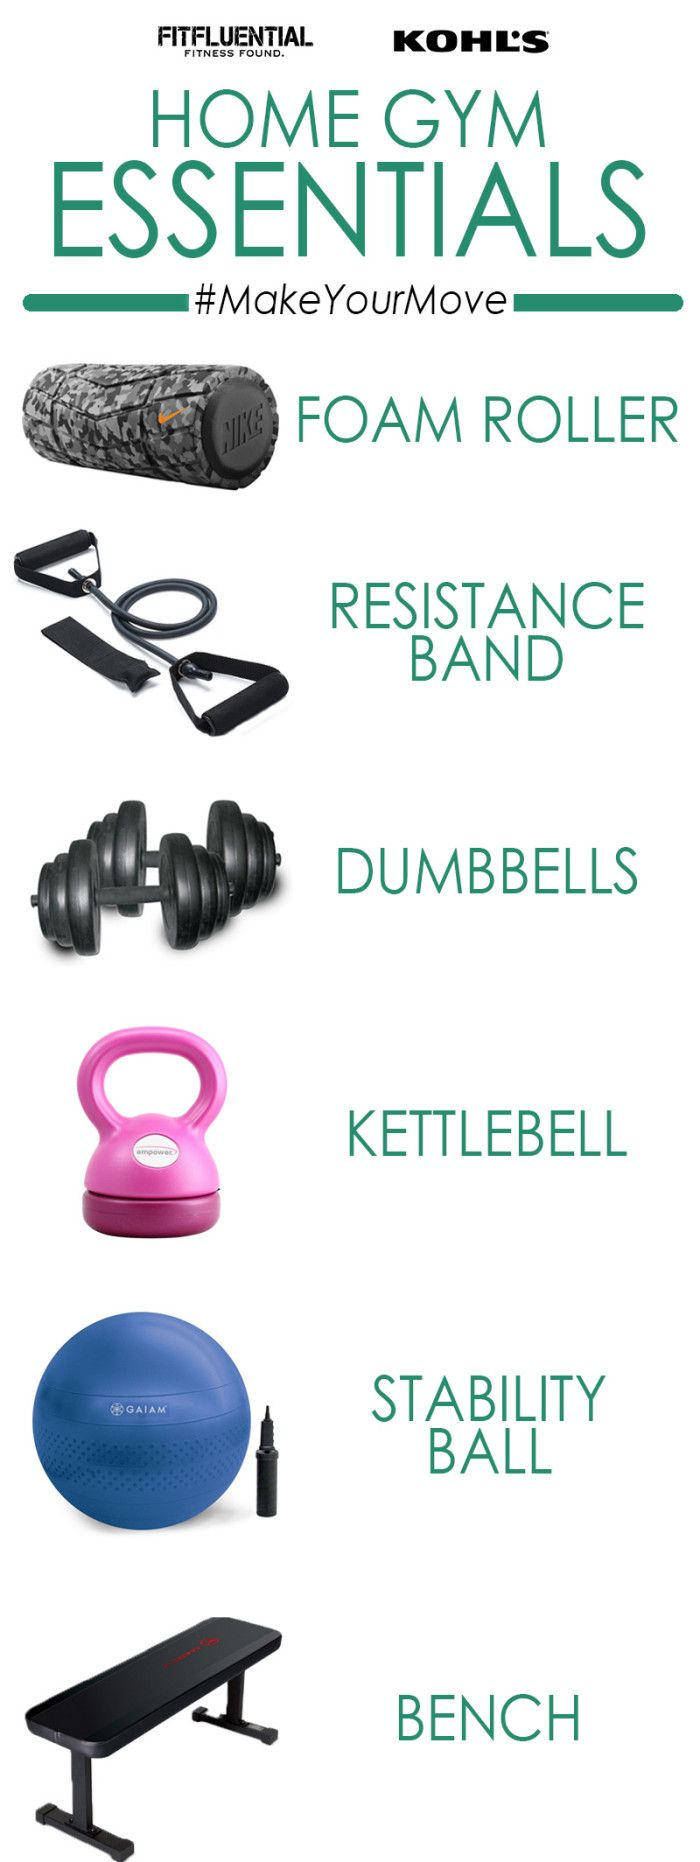 #MakeYourMove with home workout essentials -- all of these are FANTASTIC for a home gym. #ad #fitfluential via @kohls @fitfluential